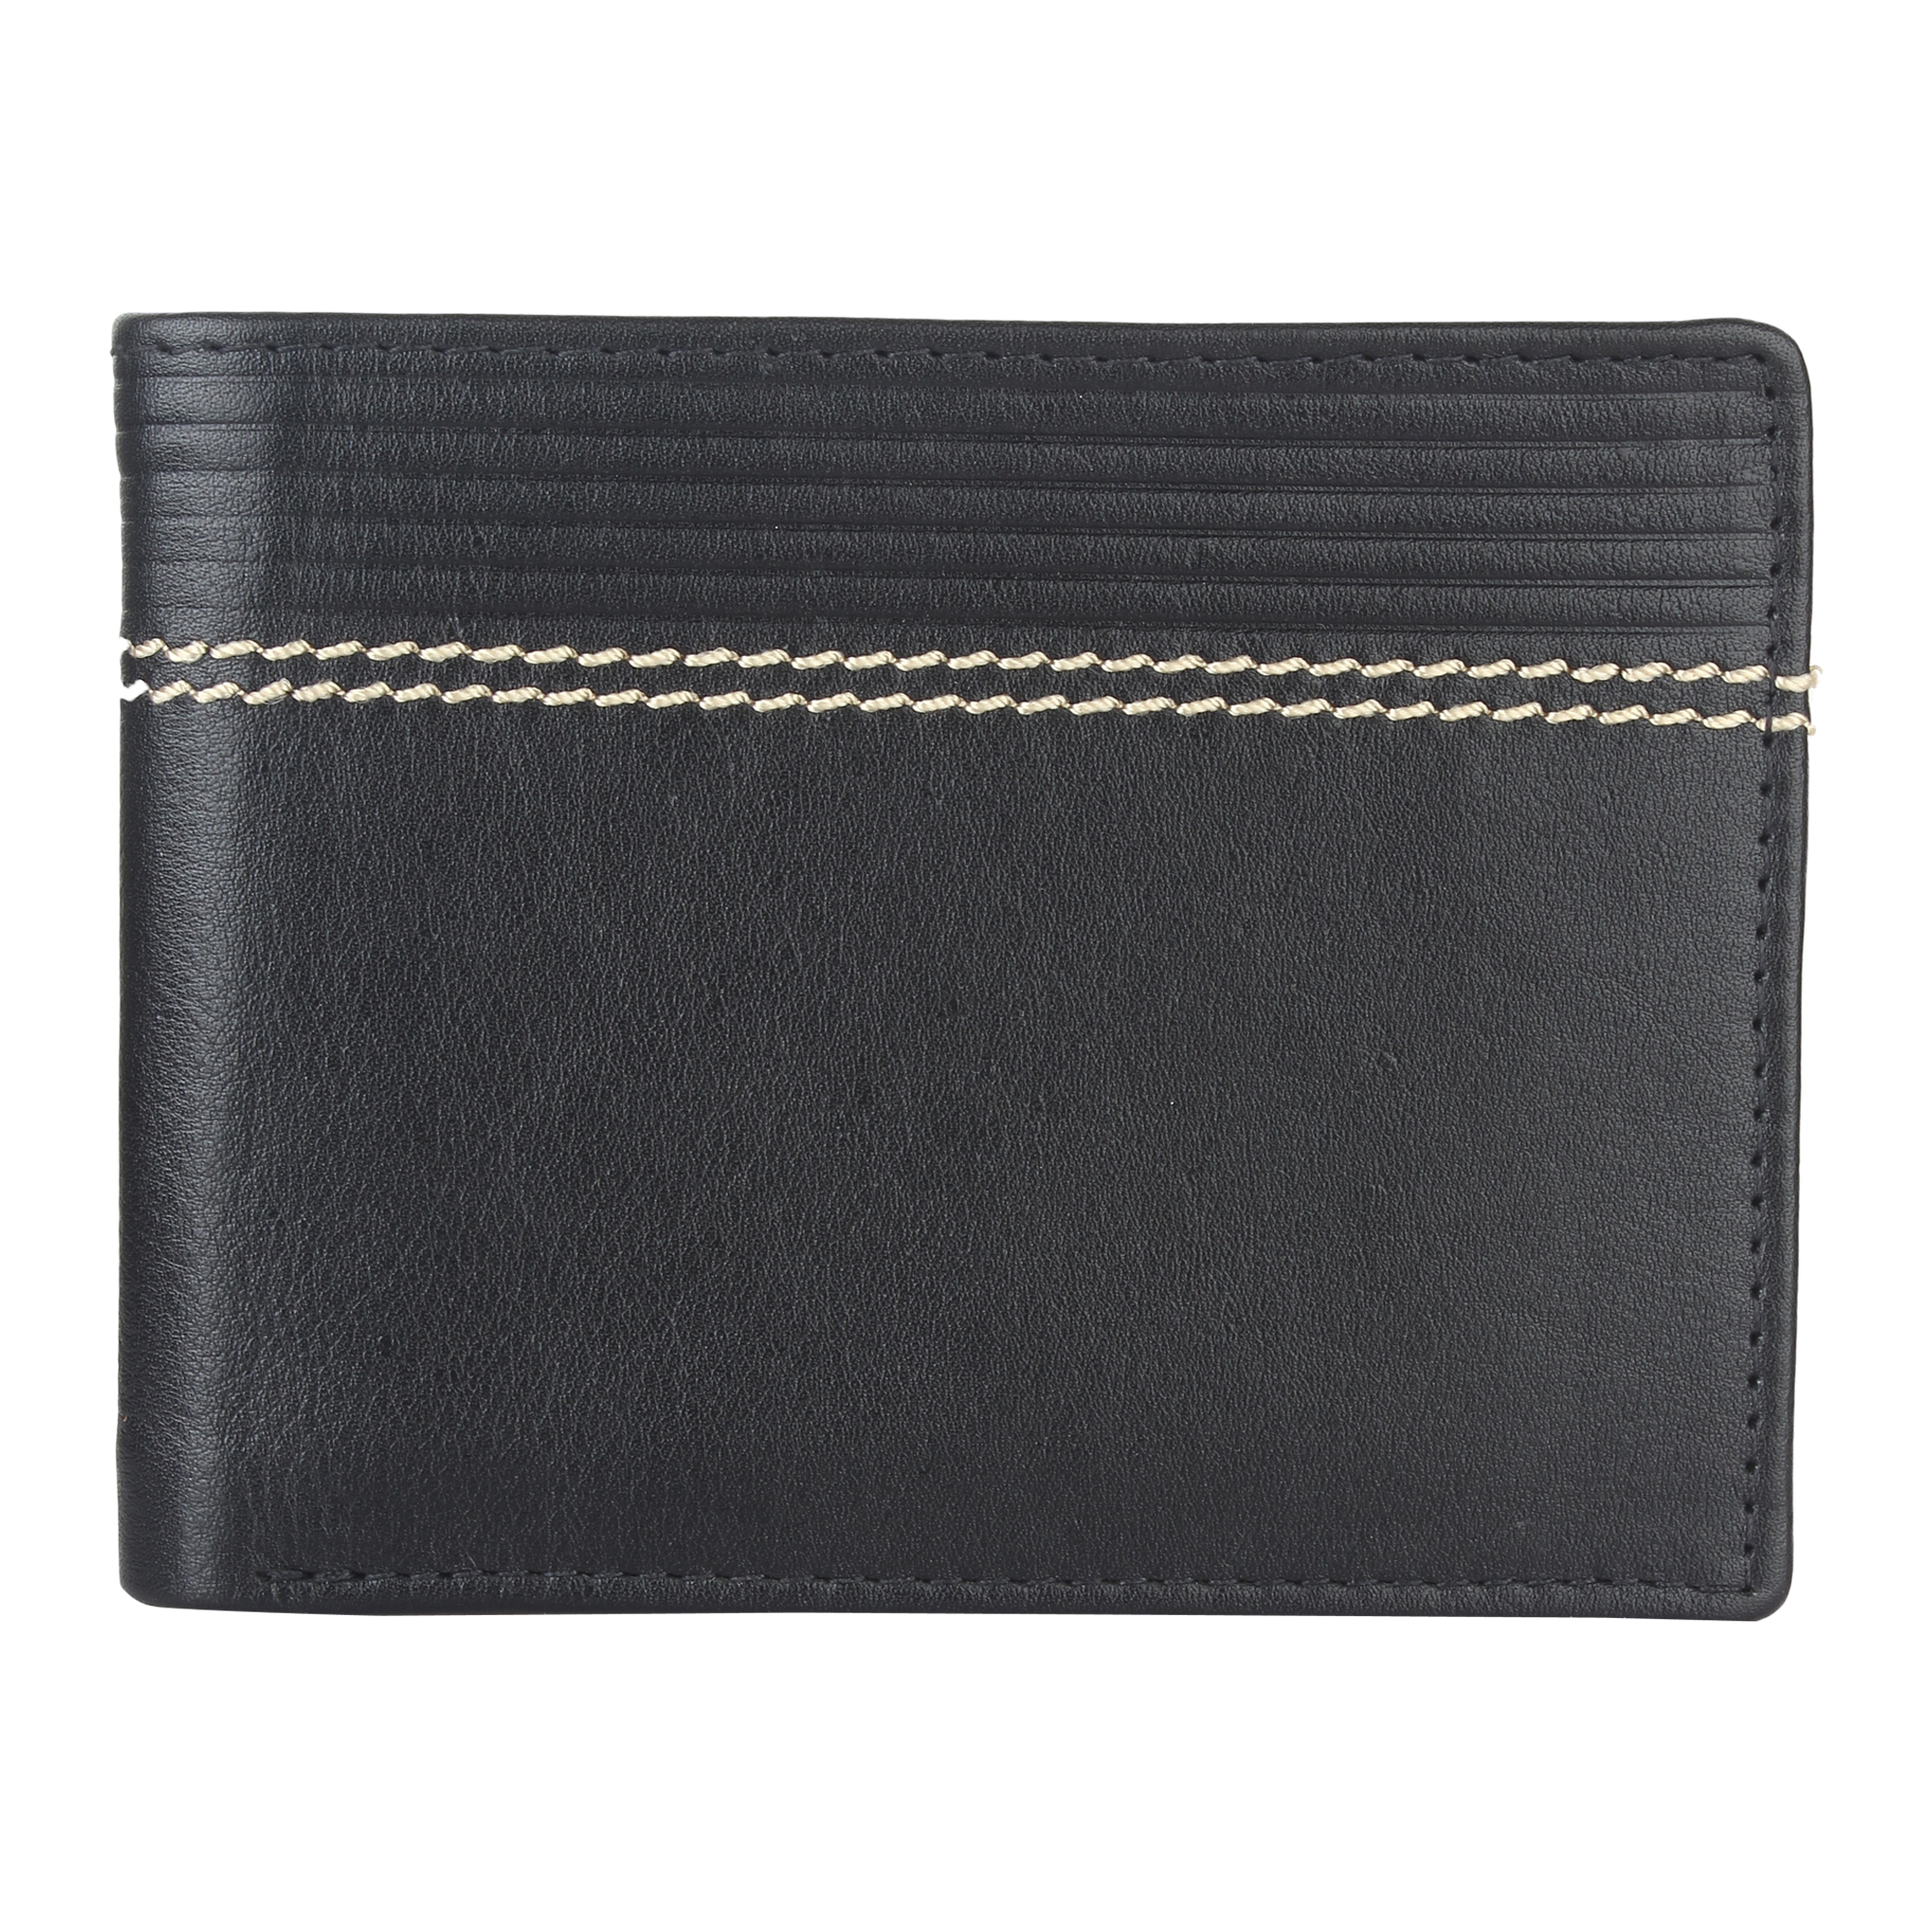 Leather Wallets Manufacturers in Palermo, Leather Wallets Suppliers in Palermo, Leather Wallets Wholesalers in Palermo, Leather Wallets Traders in Palermo, custom leather wallet manufacturers in Palermo, Leathe